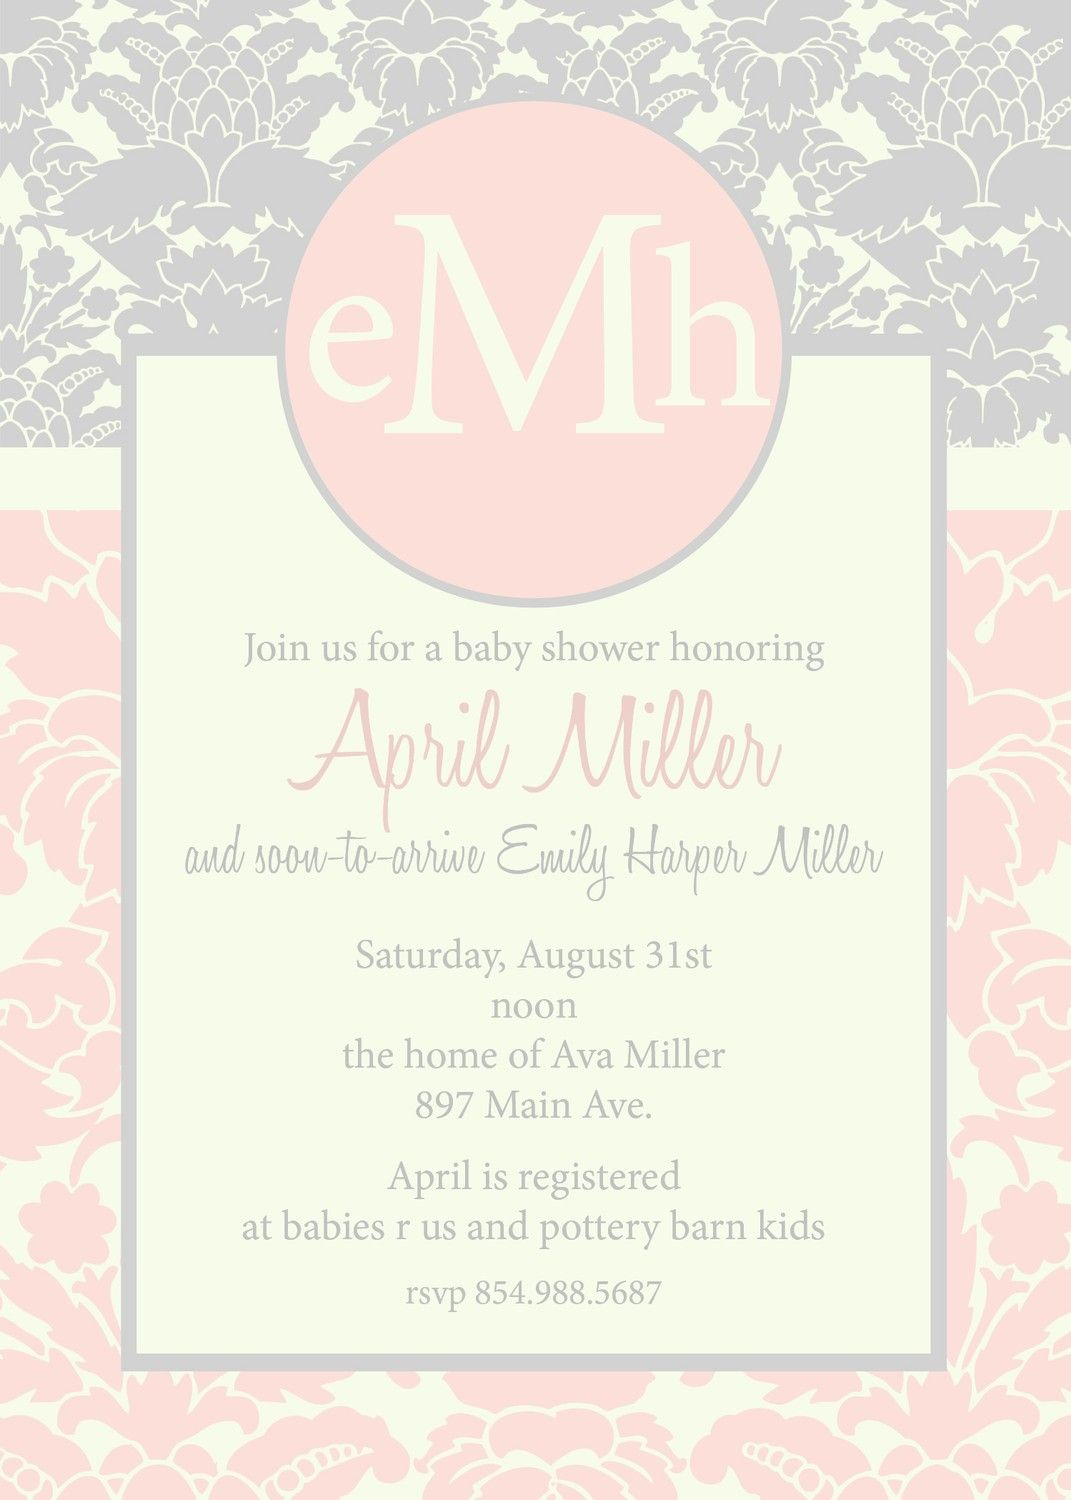 April- Custom Damask Baby Shower Invitation | Oh Baby! | Pinterest ...